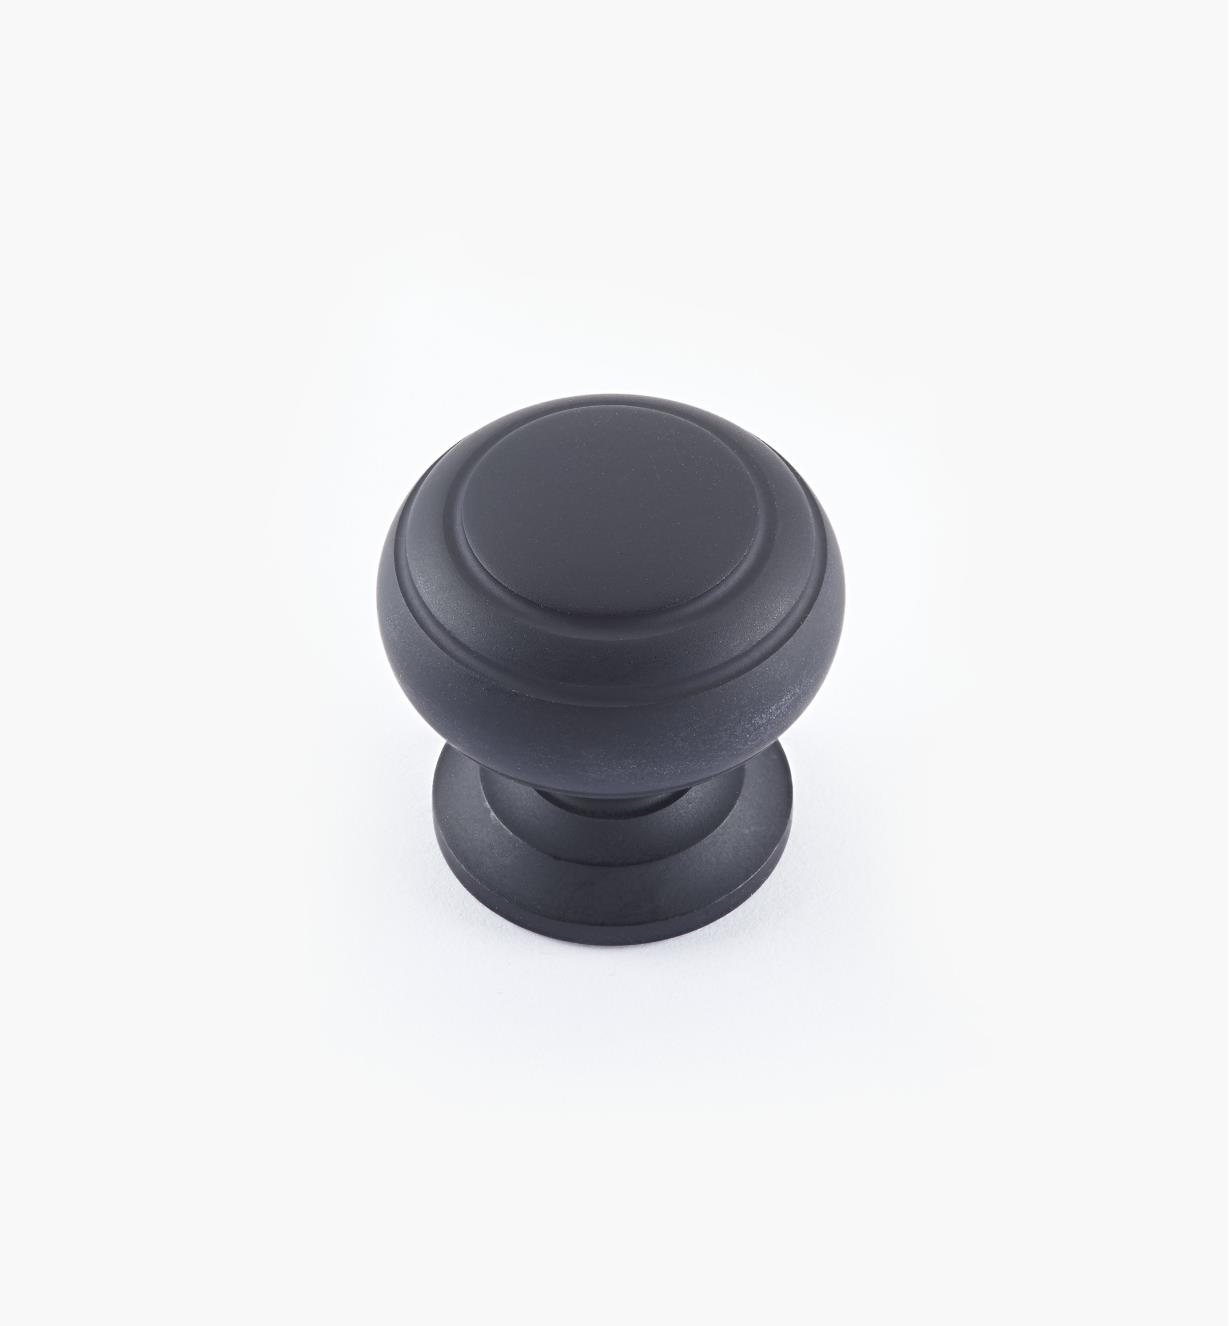 "02W3245 - Oil-Rubbed Bronze Suite - 1"" x 1"" Turned Brass Ring Knob"